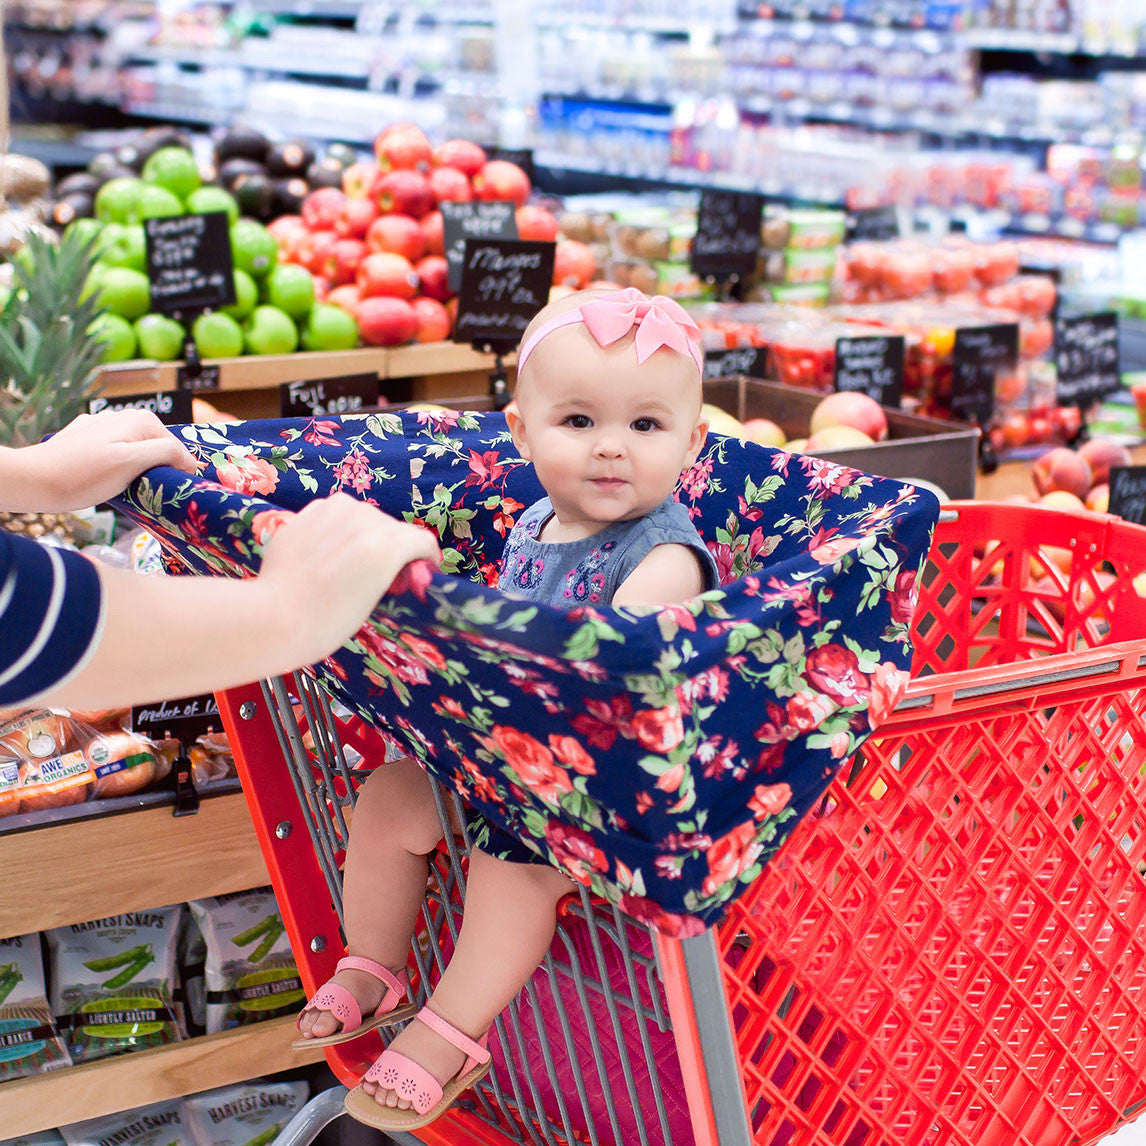 Image result for baby shopping cart cover